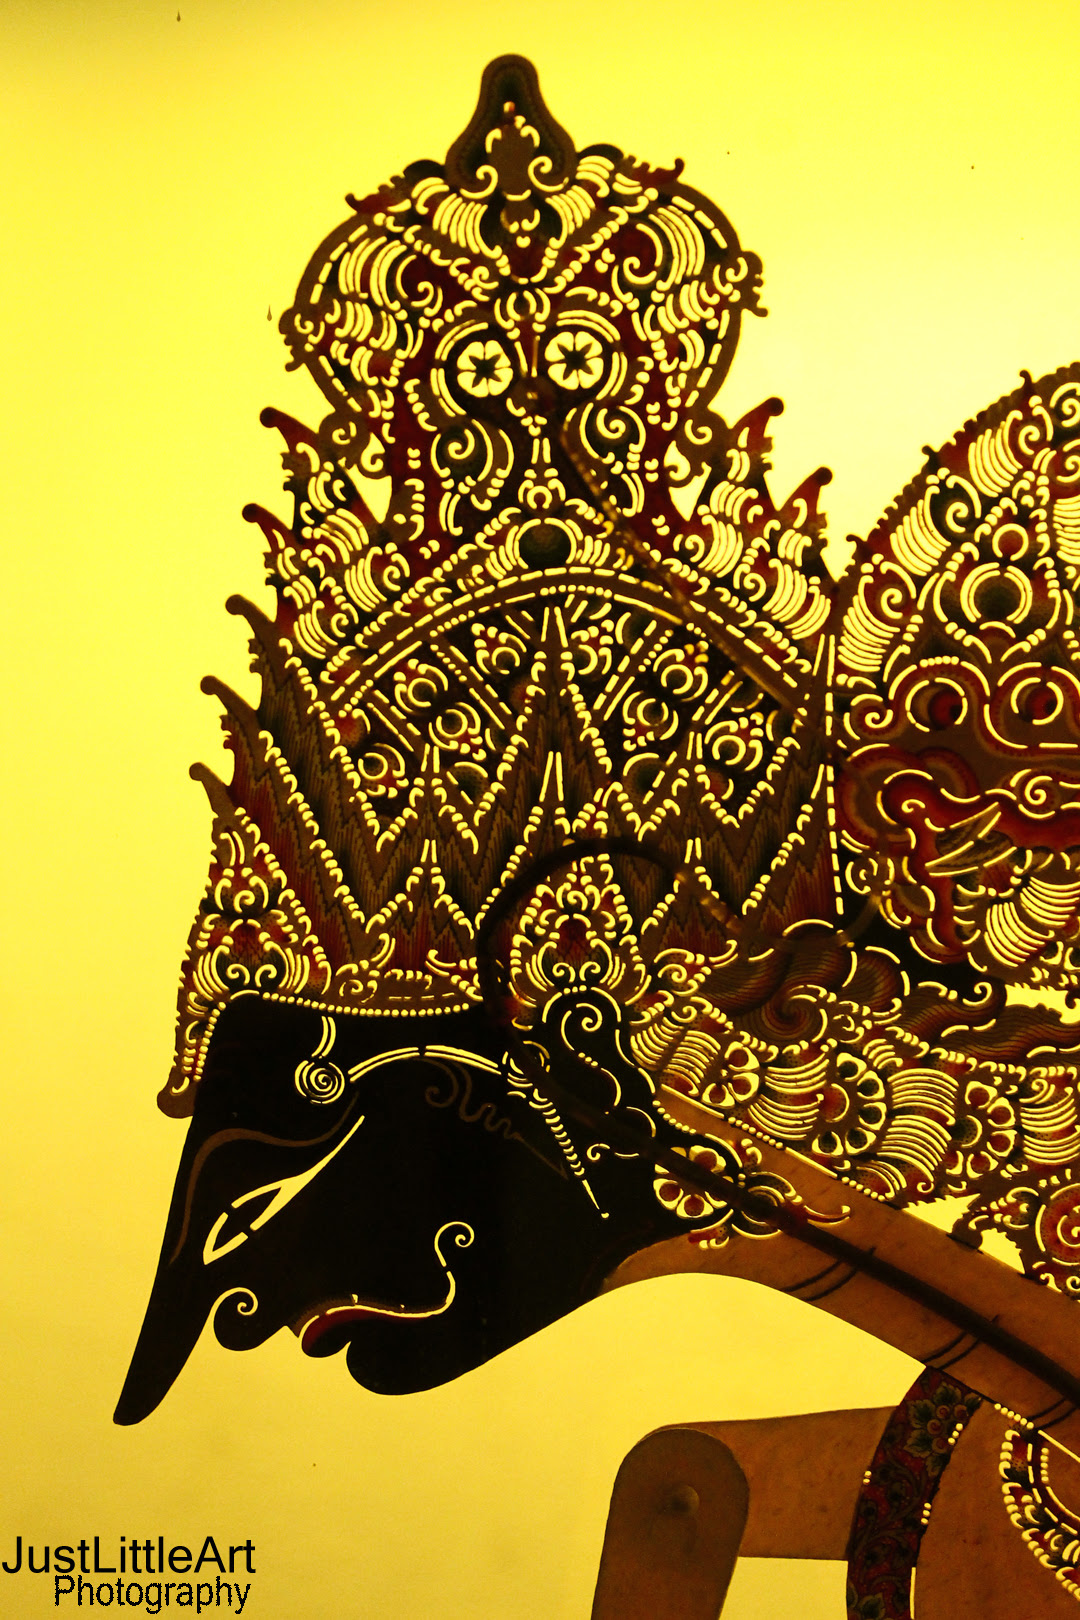 Pin Wallpaper Wayang Kulit On Pinterest